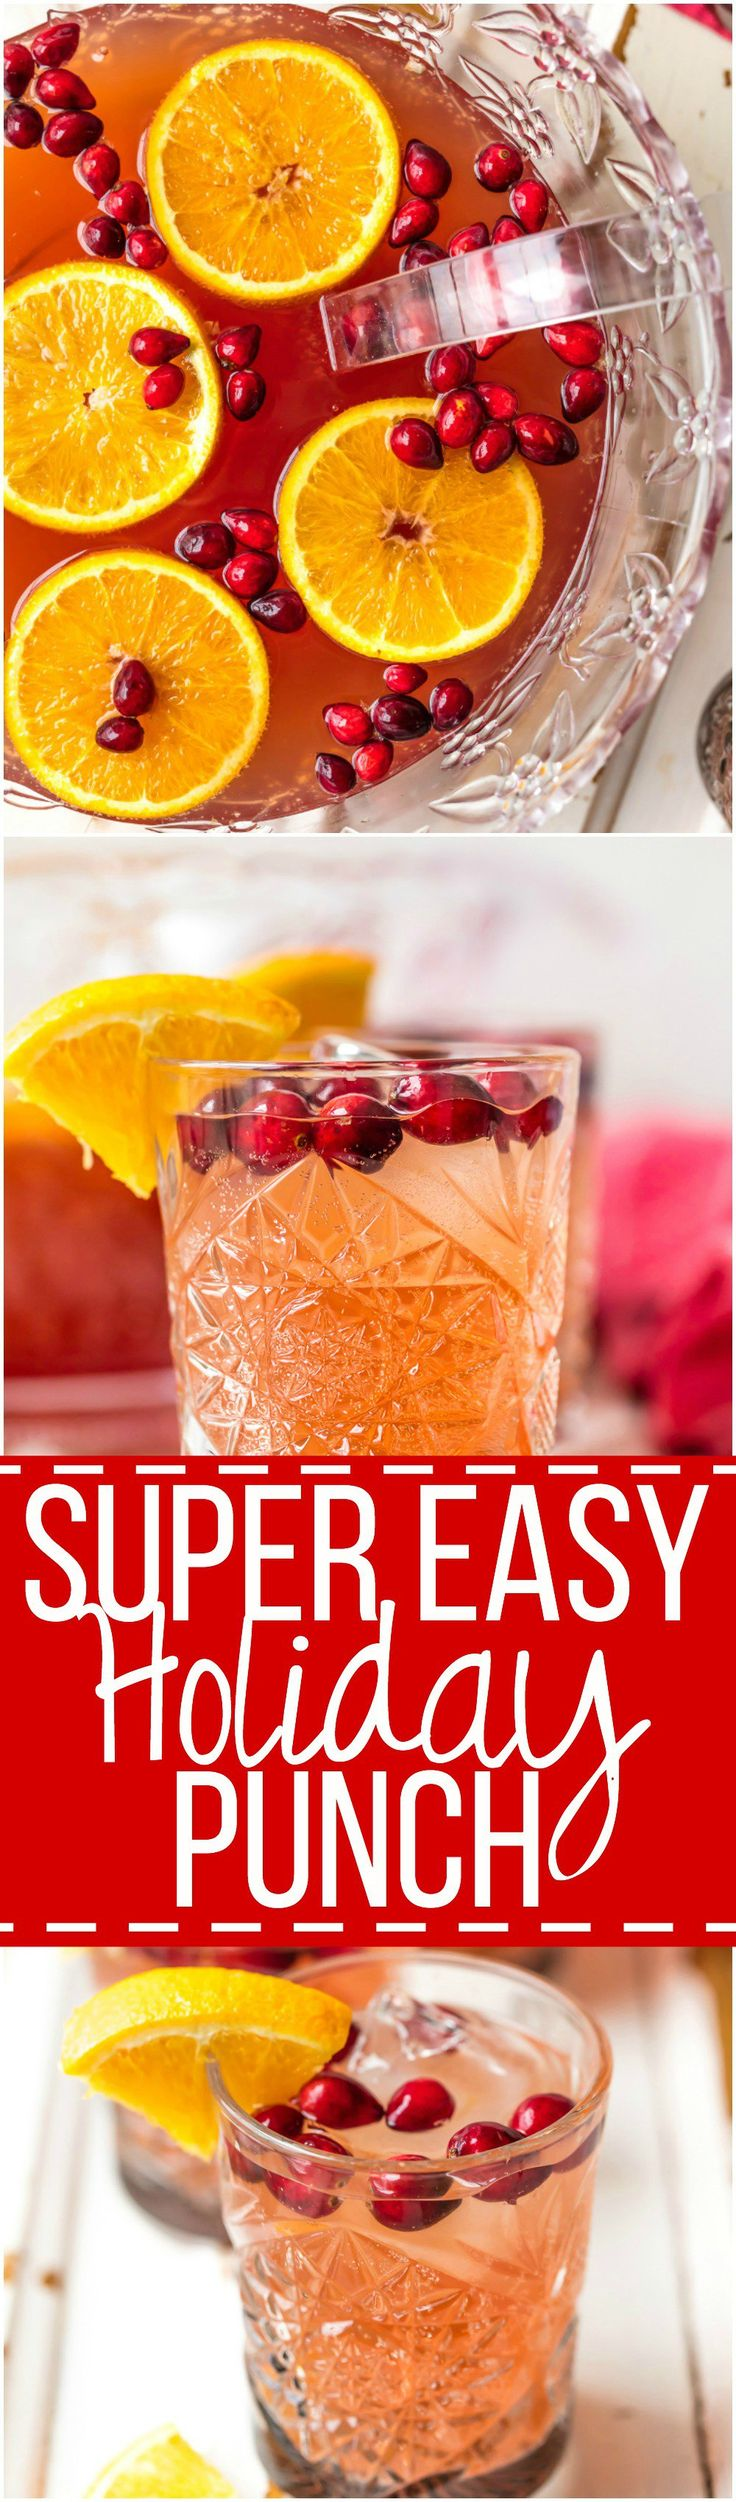 Easy Holiday Punch | The Cookie Rookie | Bloglovin'